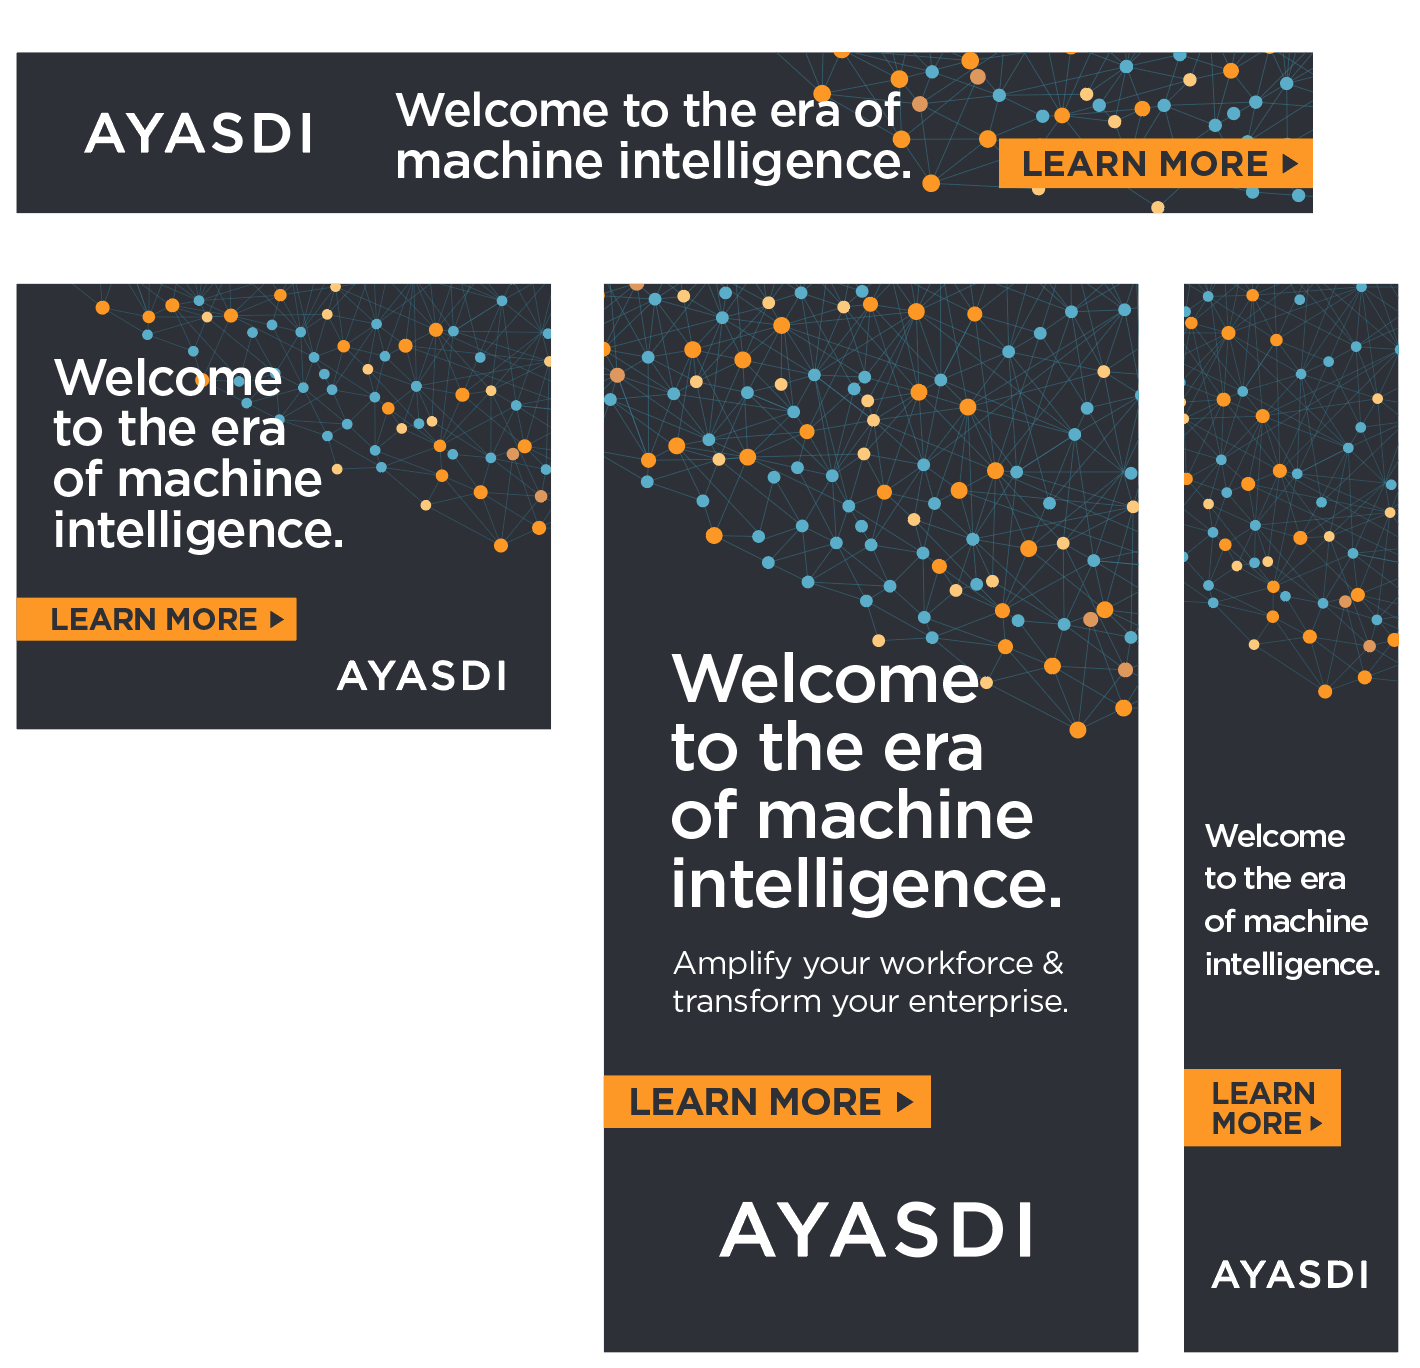 Ayasdi Web Banner Ads / Design by Heidi Skinner